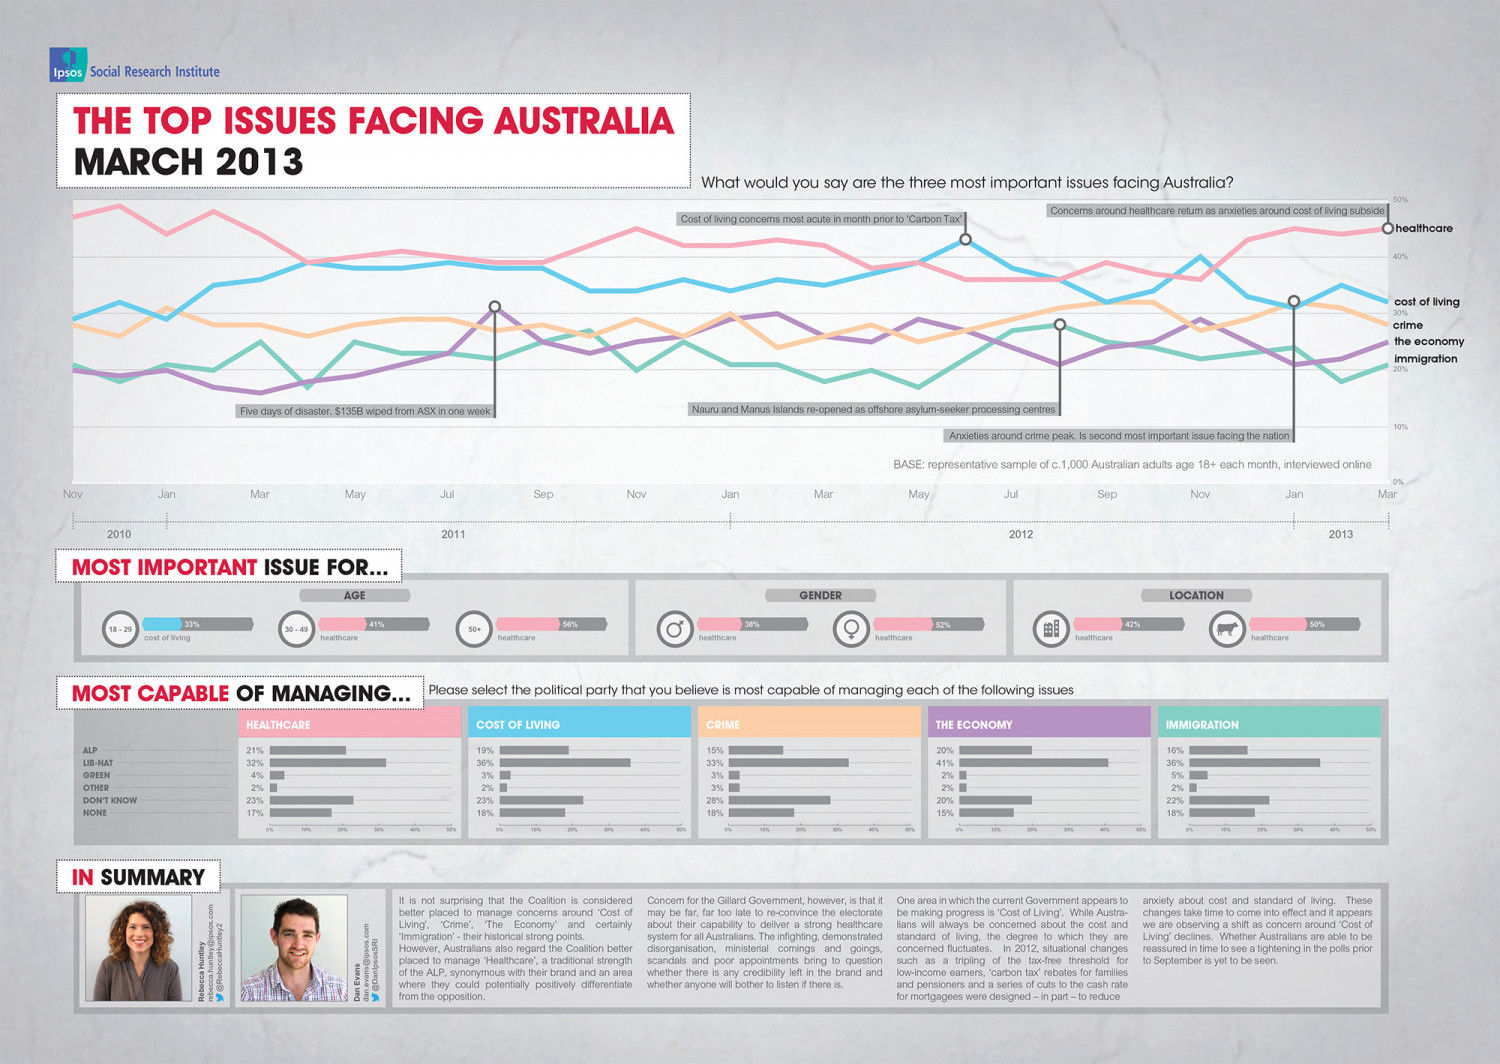 Top Issues Facing Australia - March 2013 Infographic